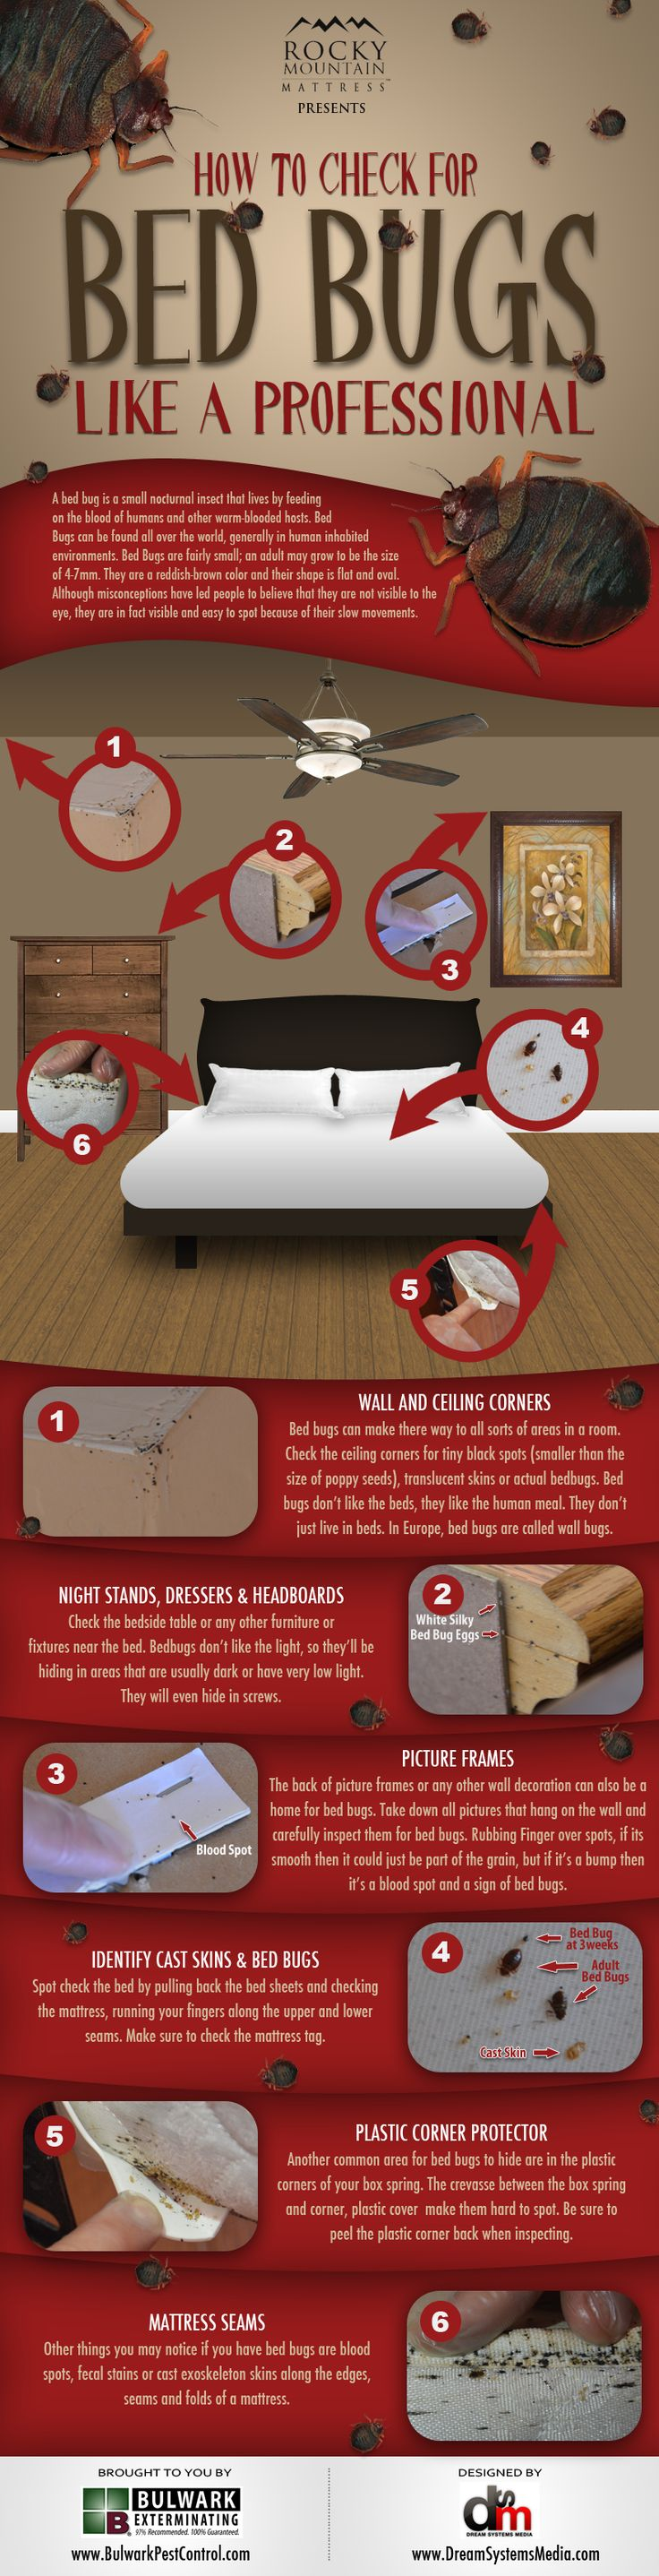 Everyone should learn how to inspect for bed bugs. Here is a simple graphic that explains how.    http://www.rockymountainmattress.com/blog/2012/05/22/how-to-check-for-bed-bugs-like-a-professional/